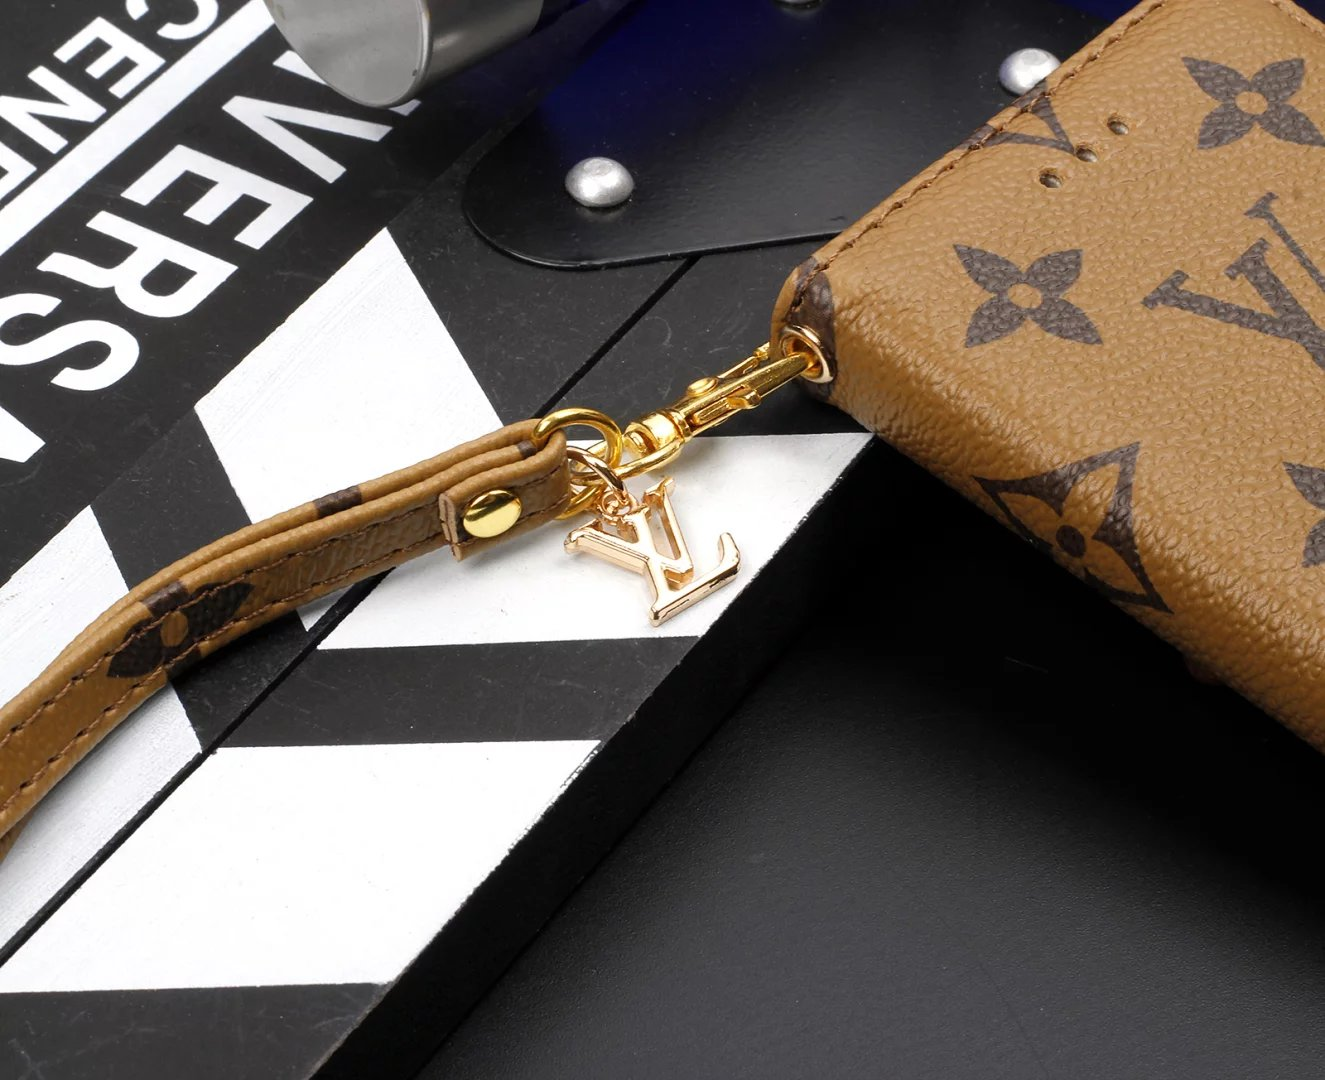 iphone hülle selber machen case für iphone Louis Vuitton iphone7 hülle handy etui iphone 7 handykappen design handy hüllen iphone zubehör shop persönliche handyhülle iphone 7 hülle leder apple